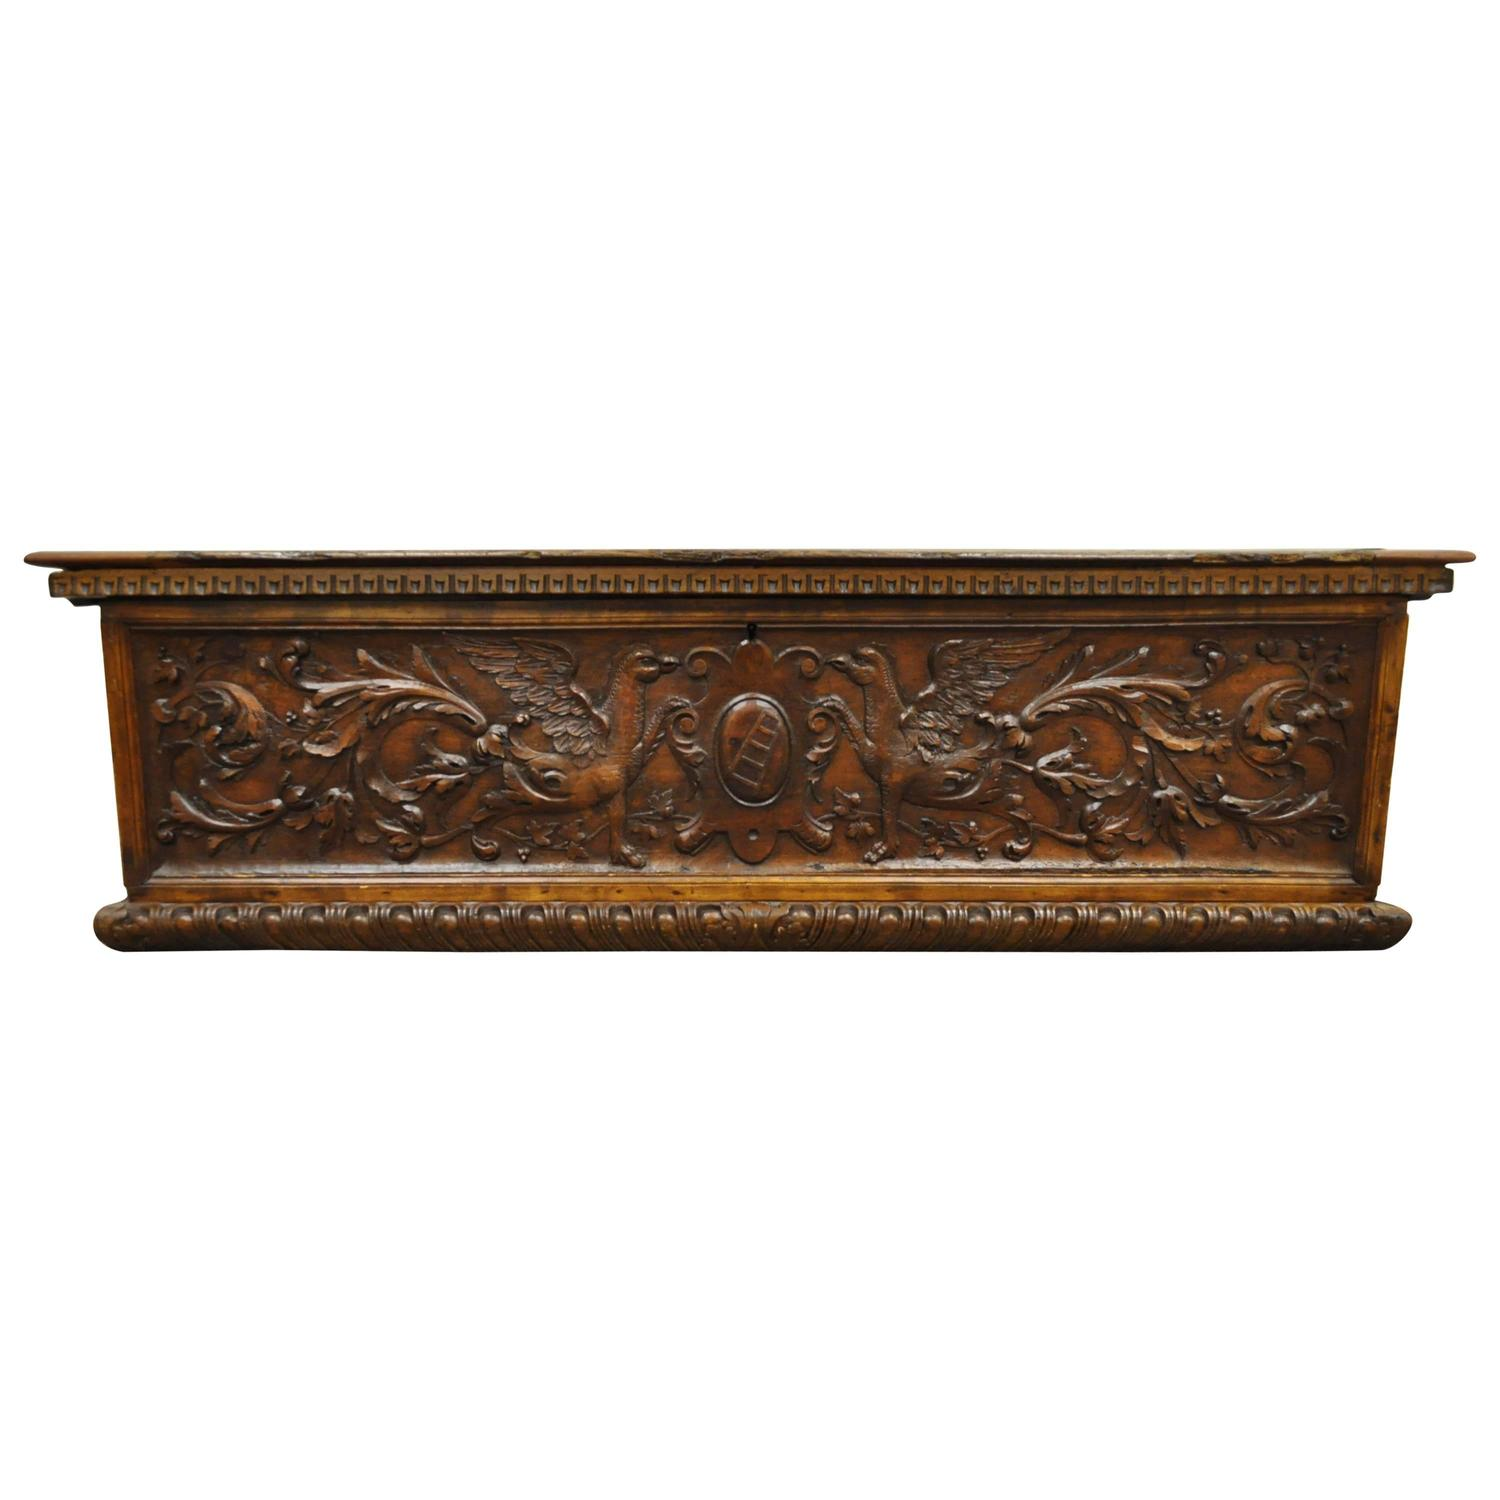 Superb img of  moreover Antique Gargoyle. on hand carved griffin antique furniture with #966B35 color and 1500x1500 pixels